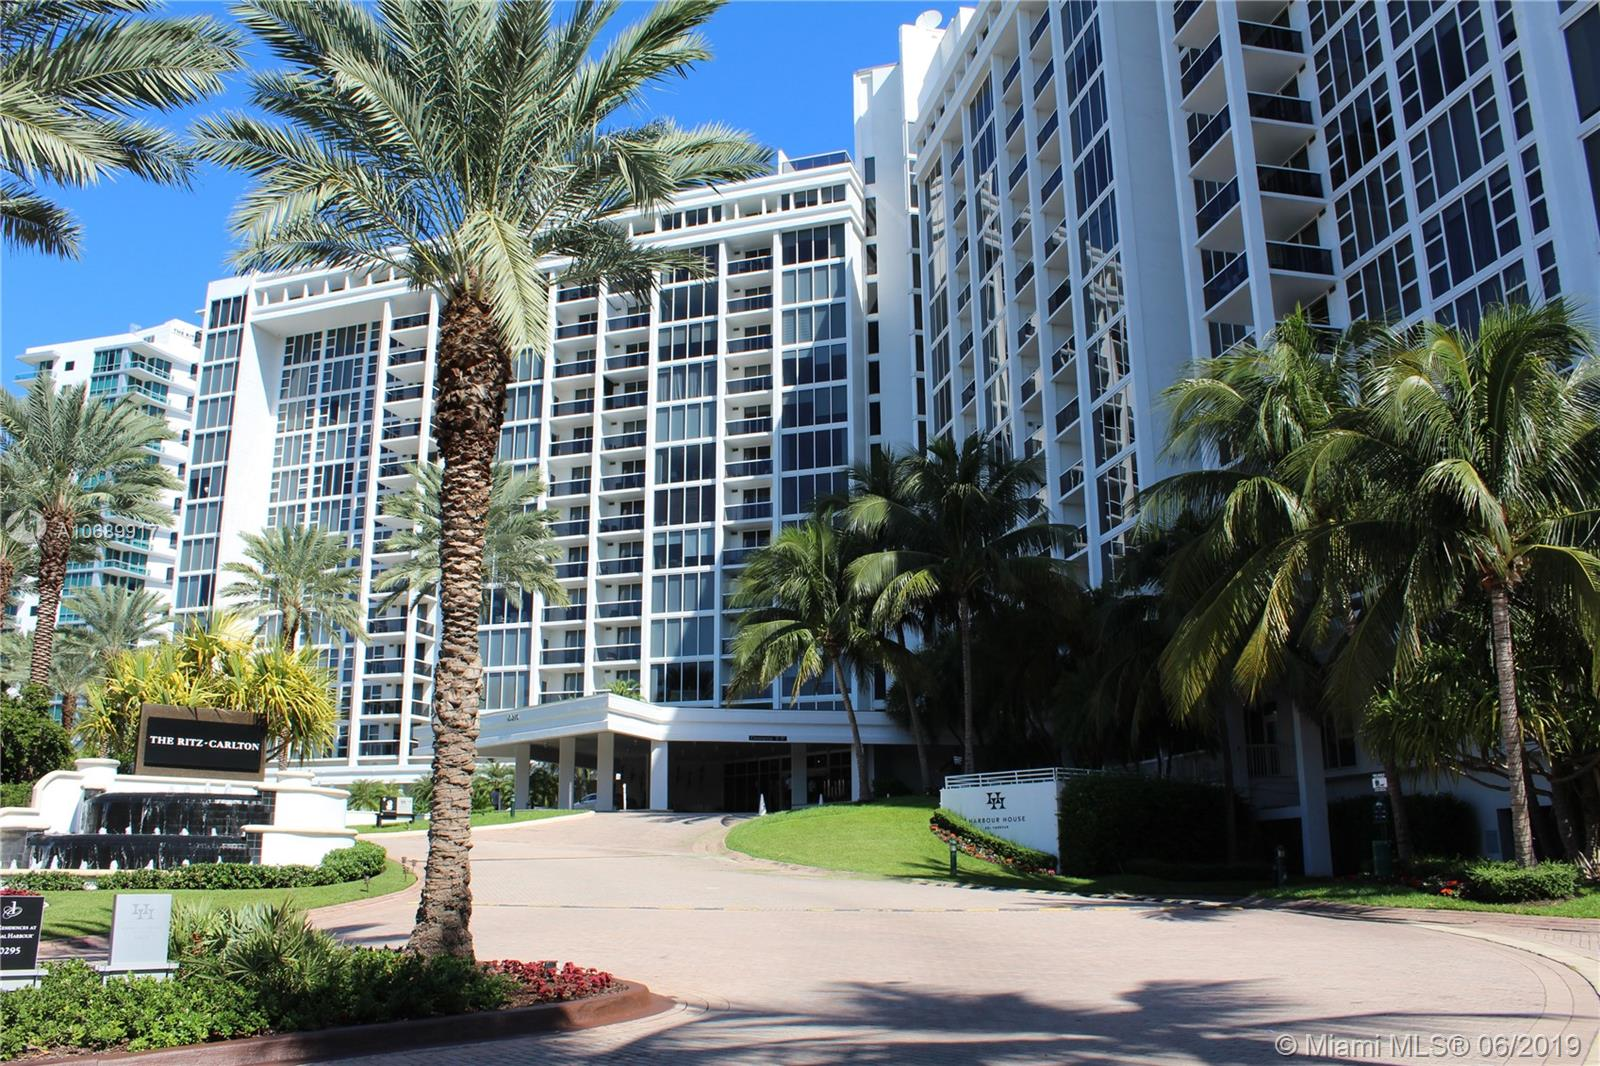 10275 Collins Ave #506 Property Photo